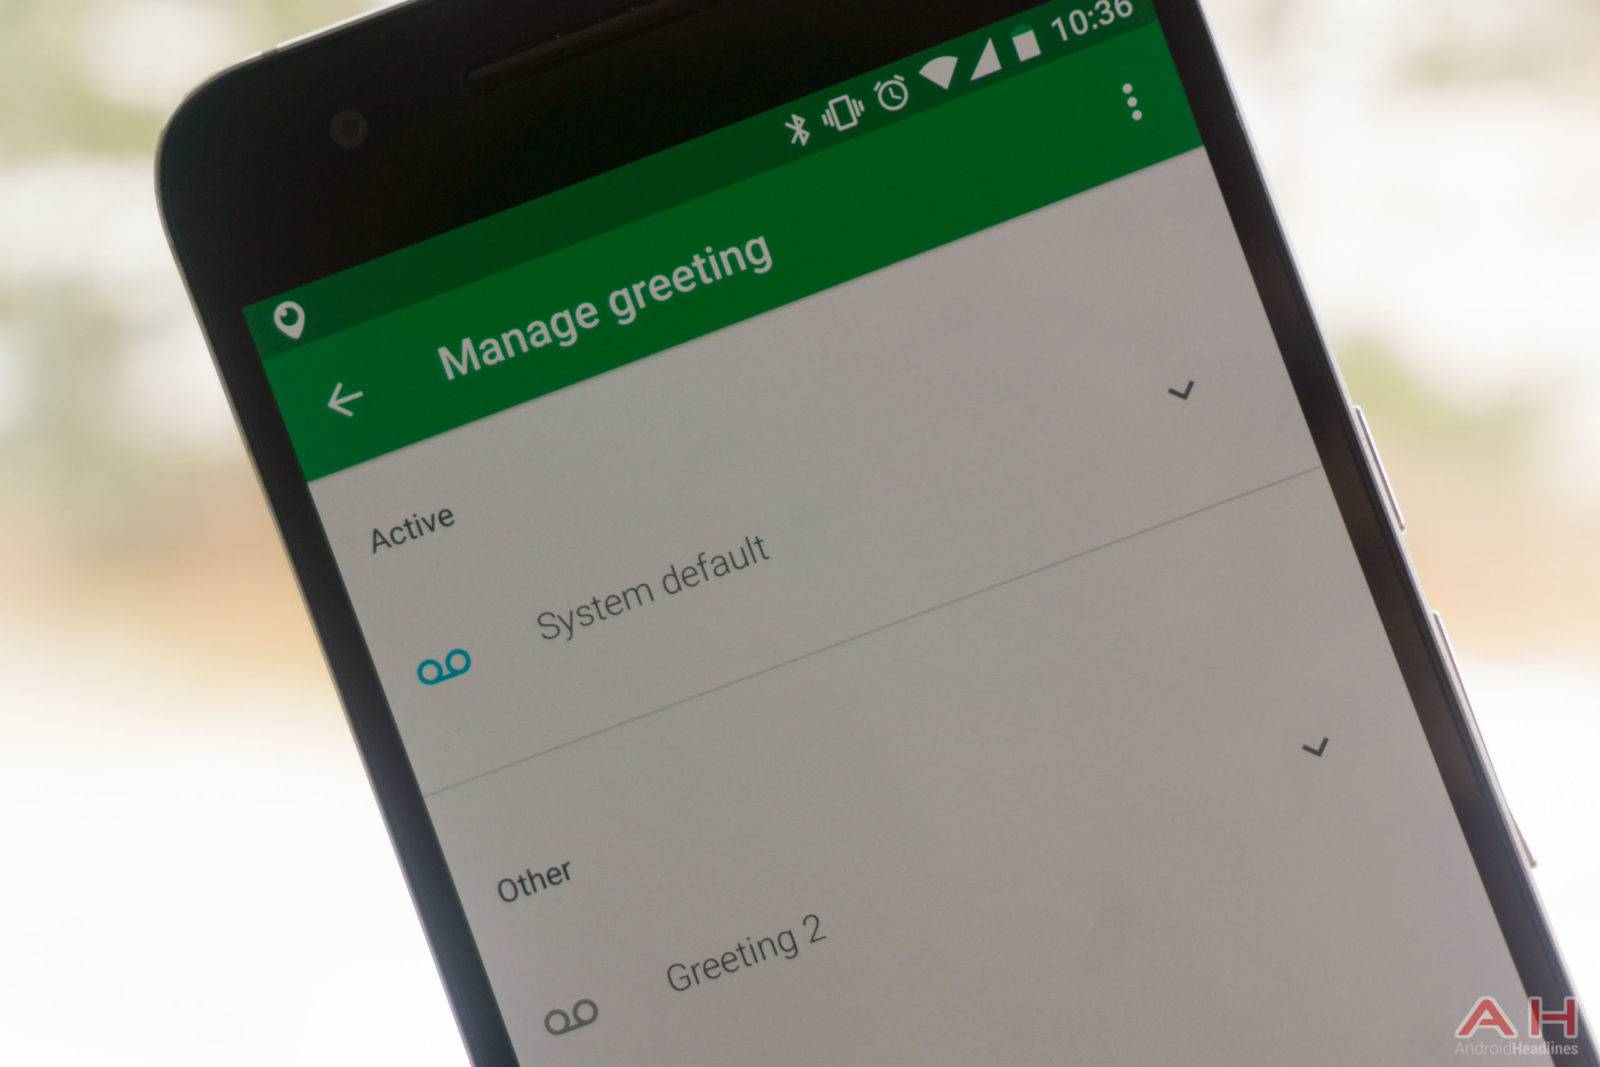 Project fi updates app for multiple voicemail greetings android news project fi updates app for multiple voicemail greetings m4hsunfo